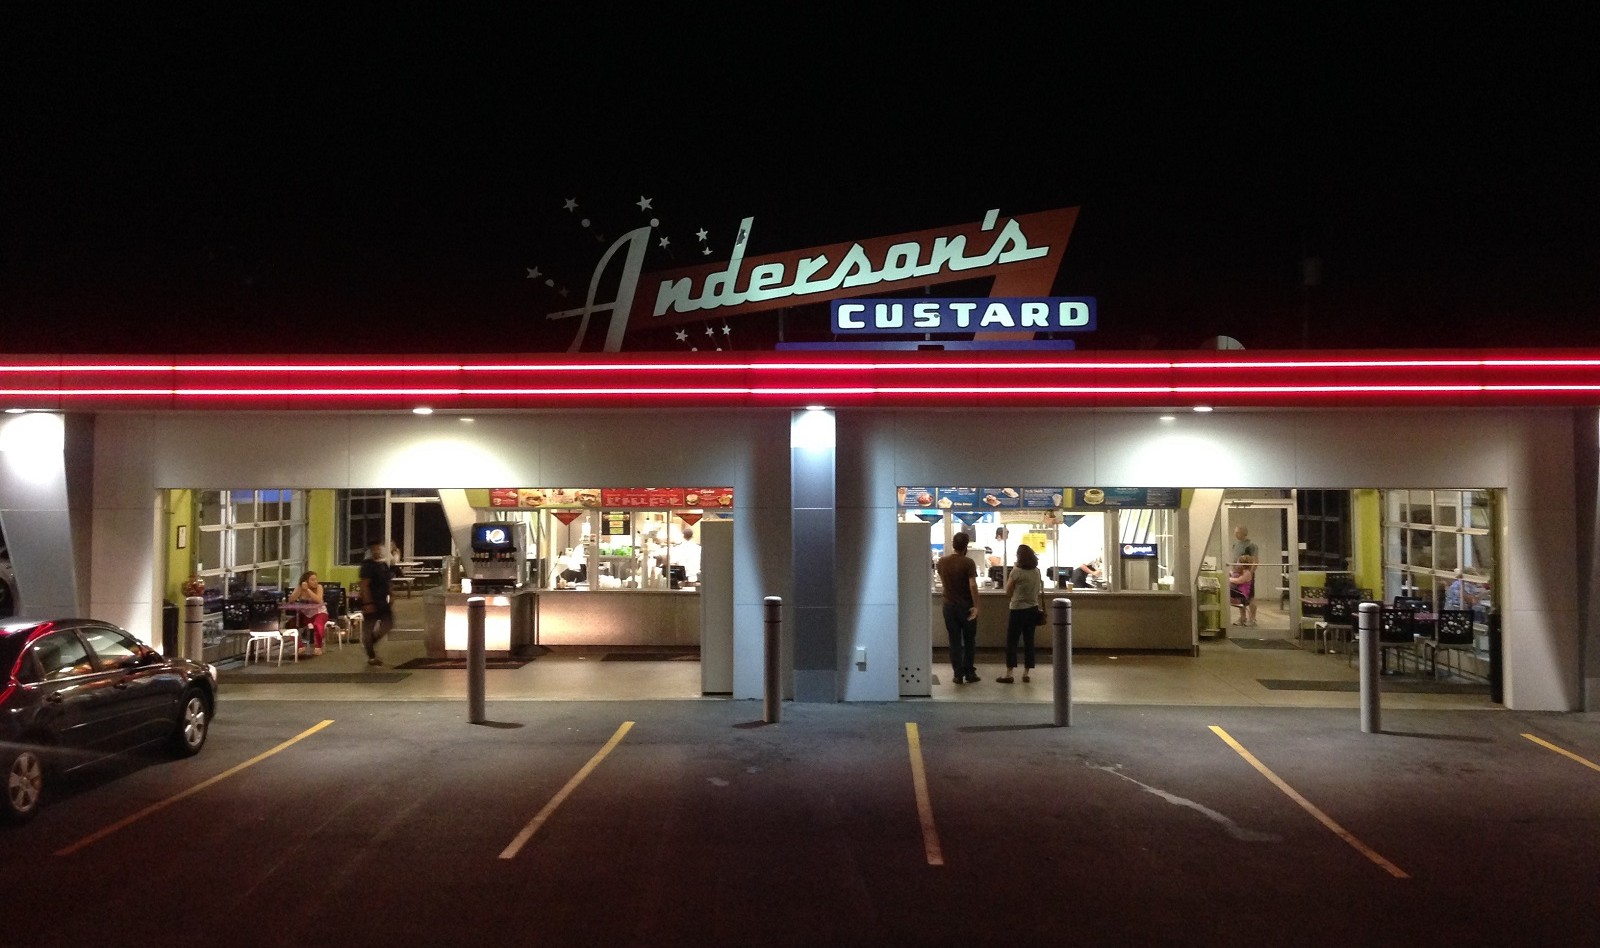 Anderson's Custard gets praise from Ben Siegel. (Ben Siegel/Special to The News)